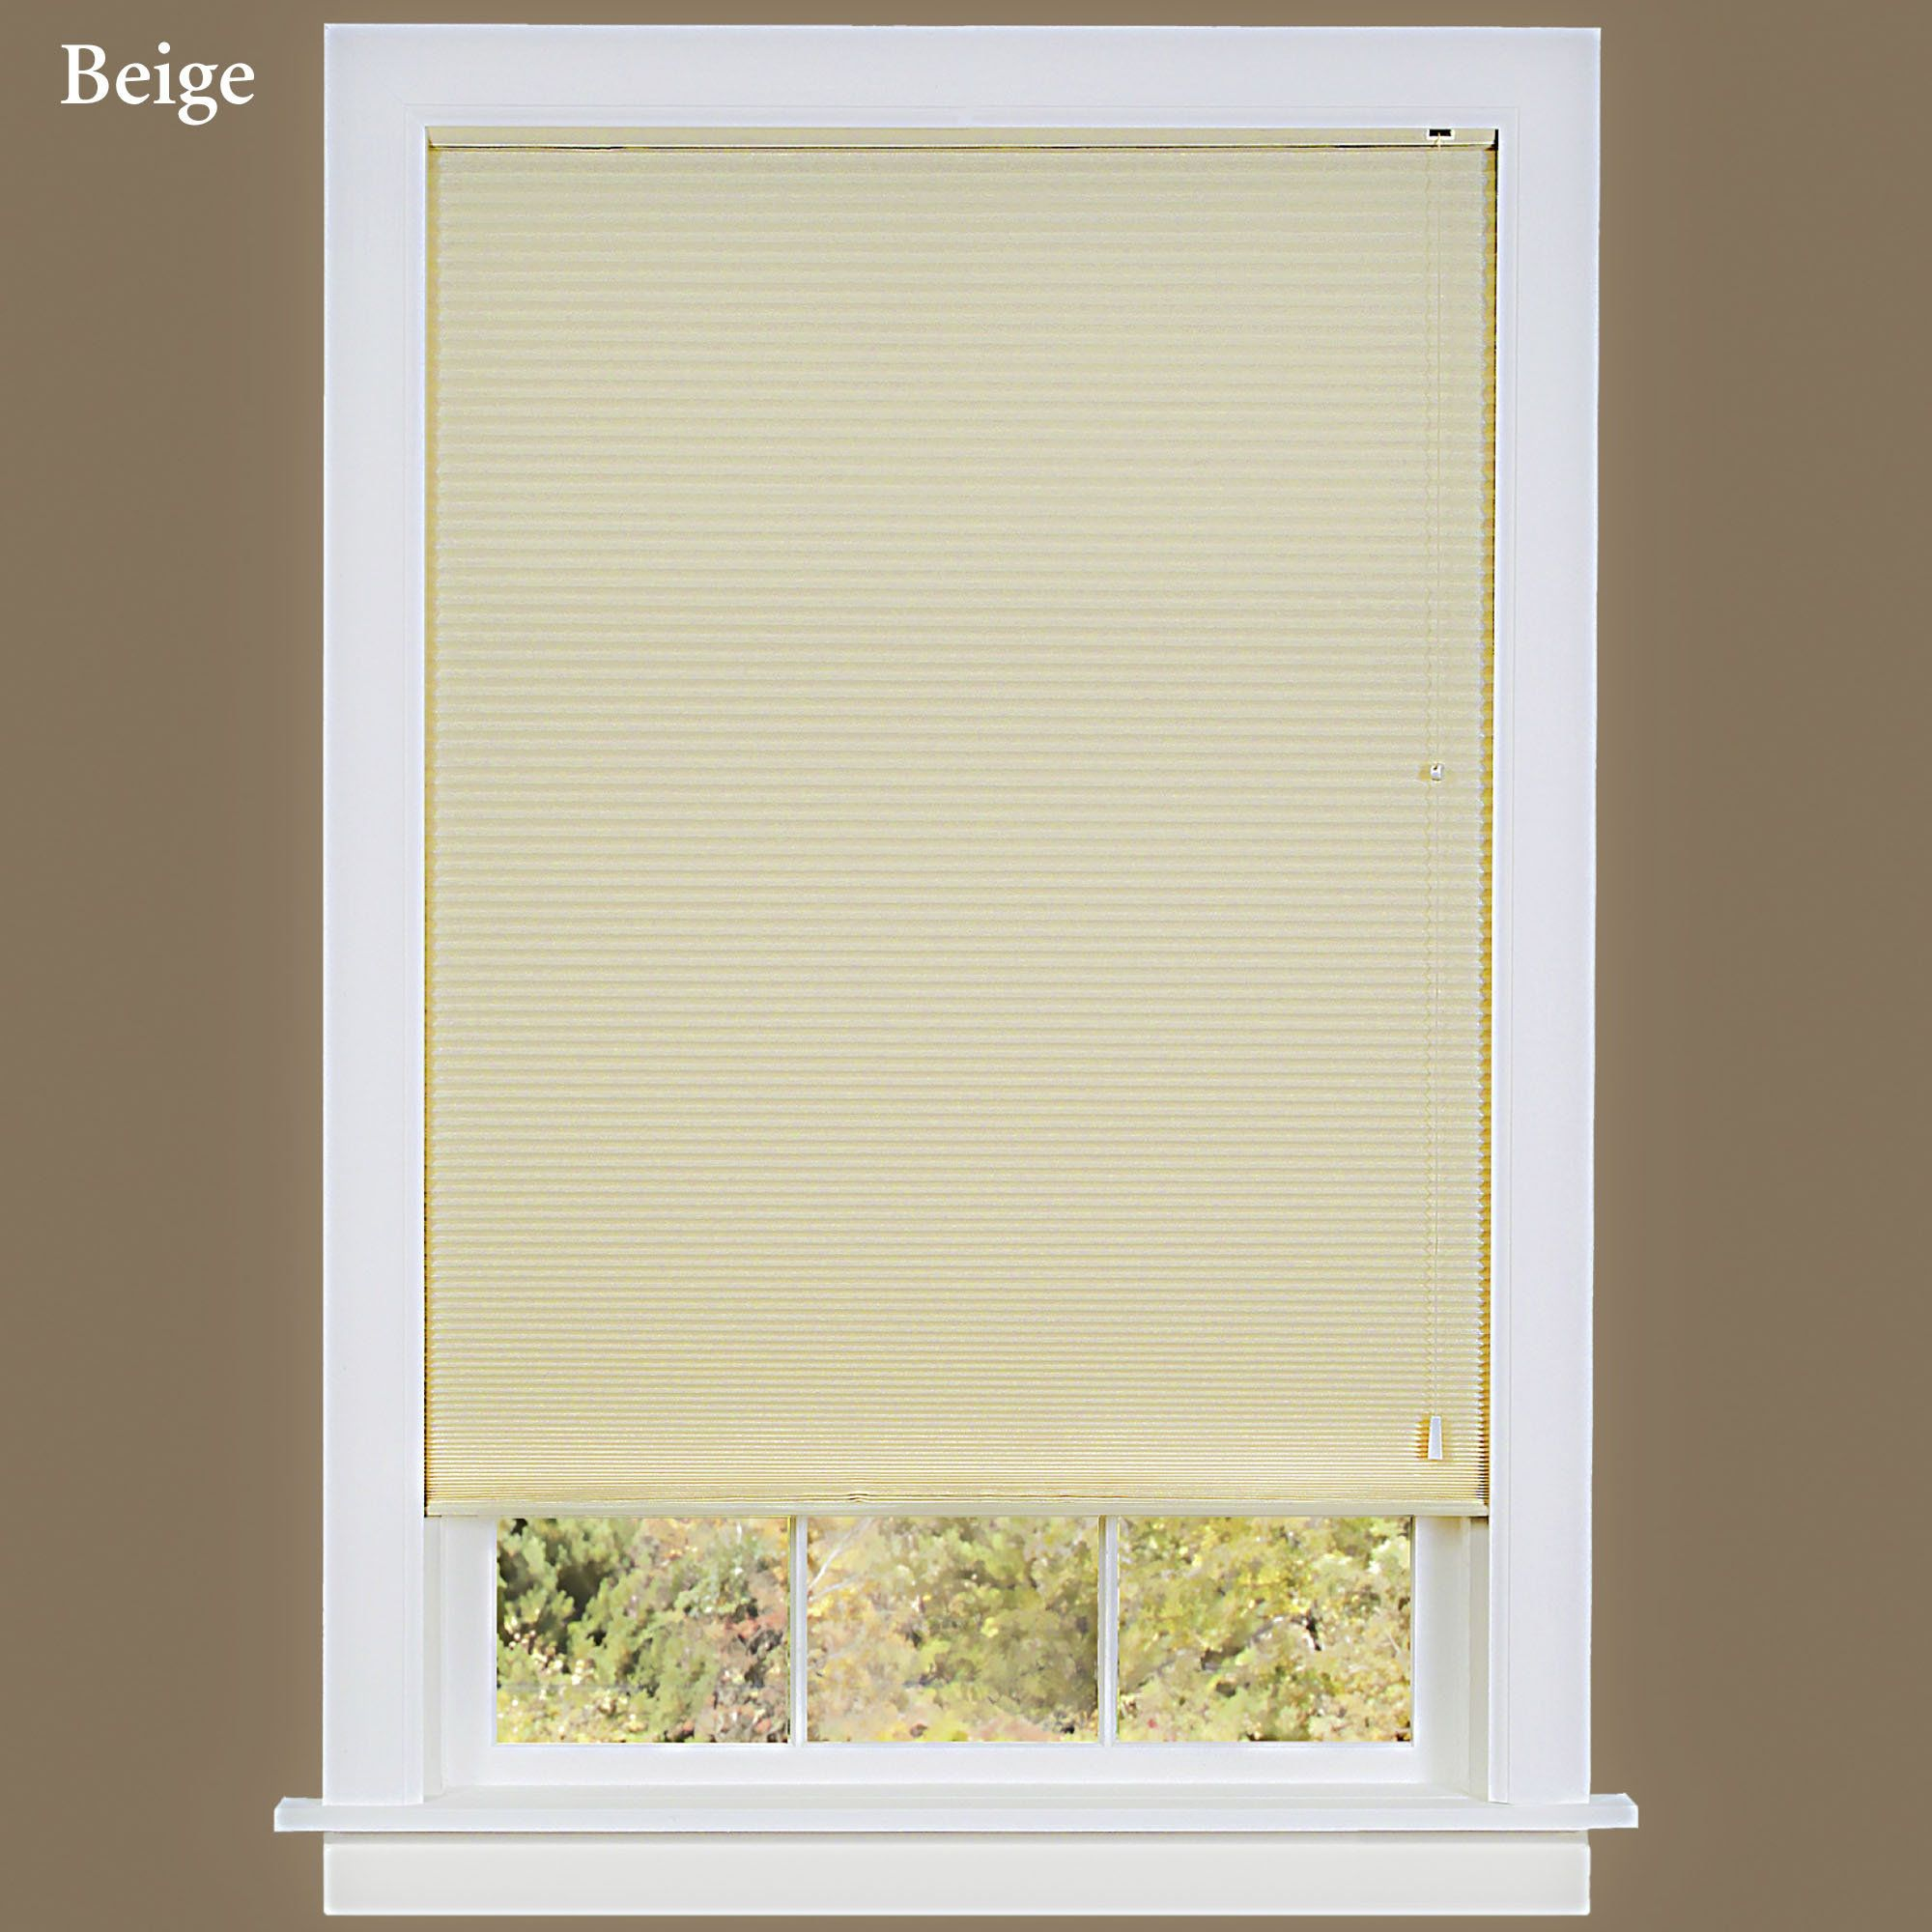 House window shade design  cellular pleated window shade  window bedrooms and lights